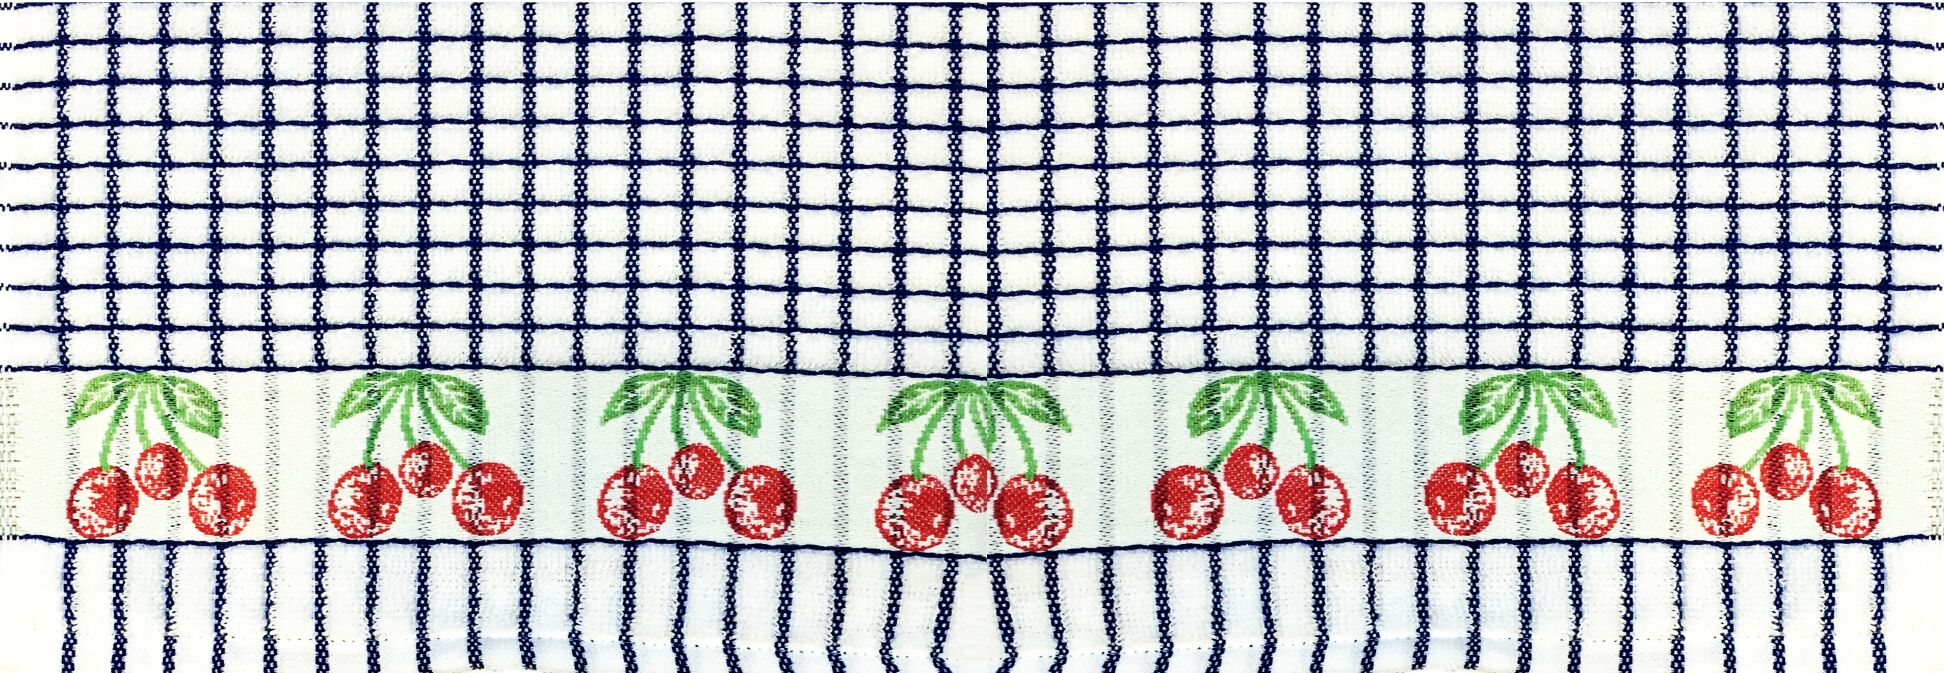 Lamont Poli-Dri Jacquard Tea Towel - Cherries